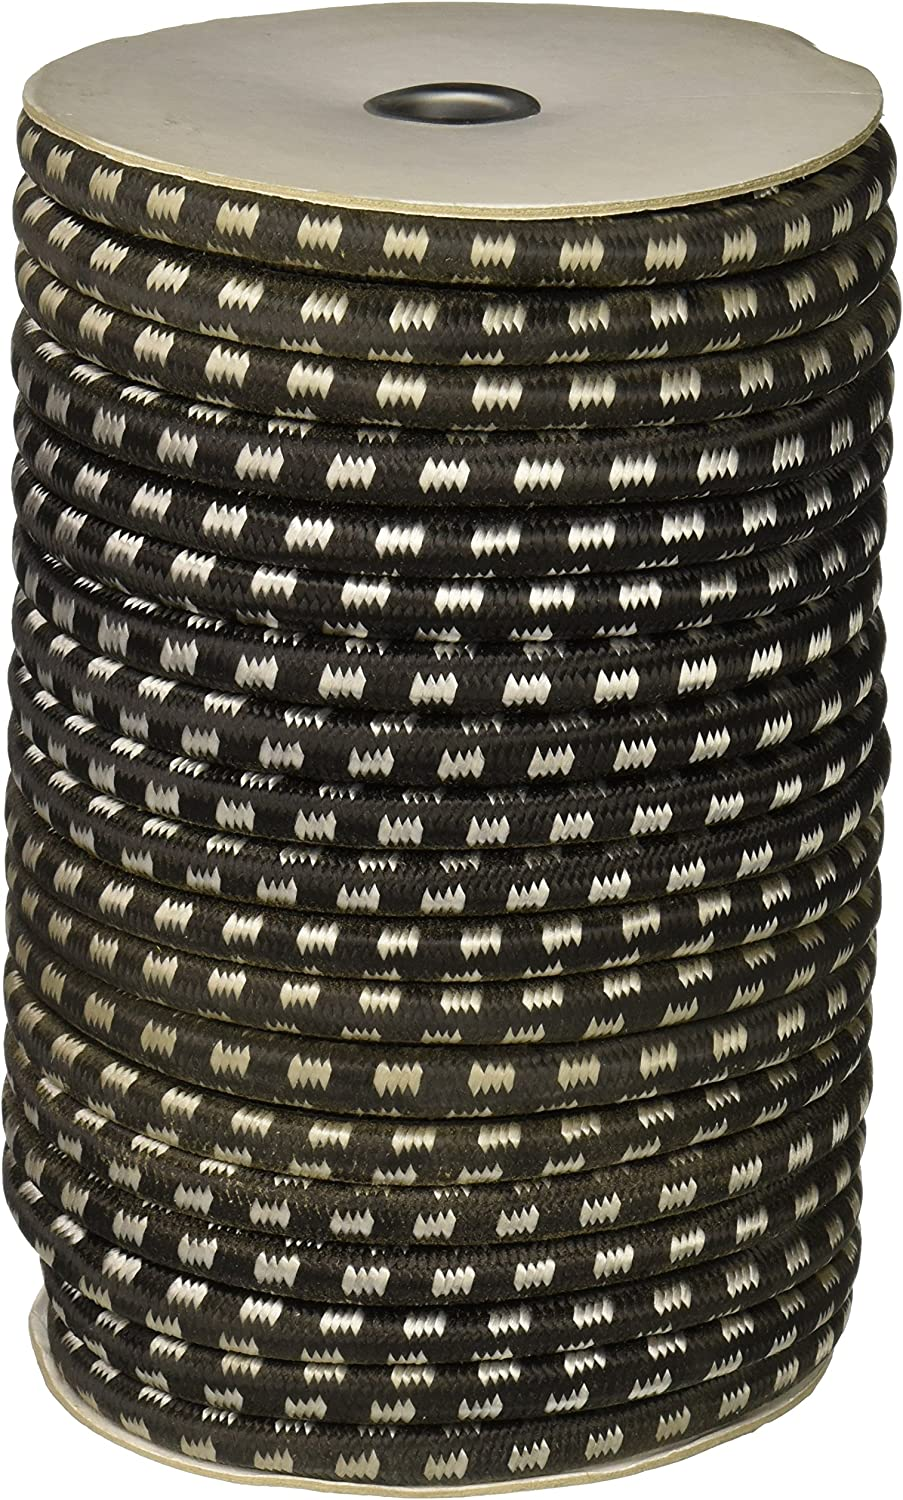 CargoBuckle F05389 7/16-Inch by 100-Feet Utility Stretch Cord Reel, Black - Bungee Cord By The Foot -